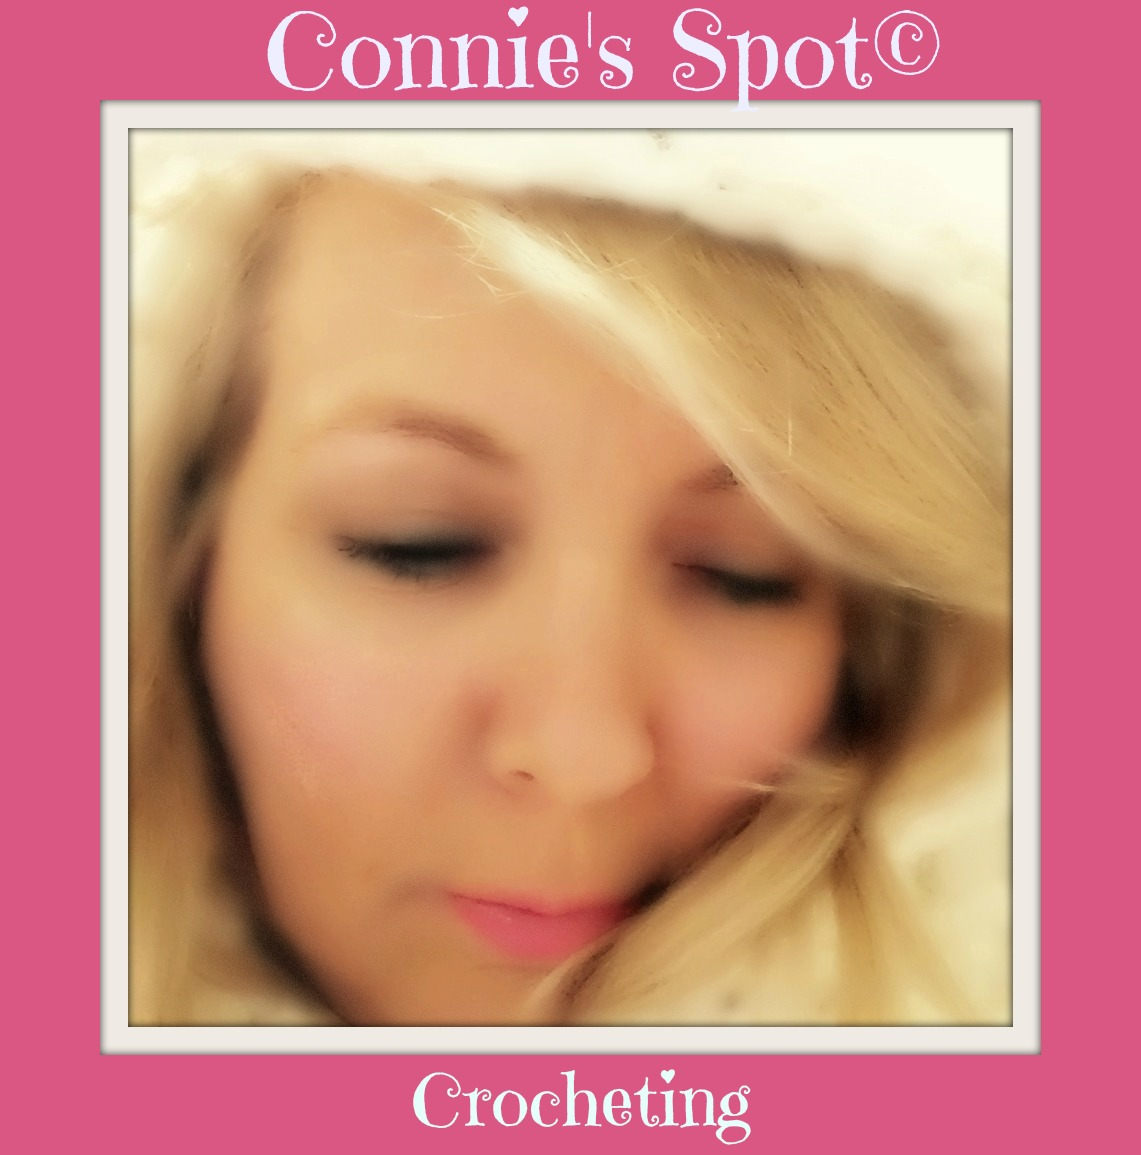 Follow Connie's Spot© On Instagram